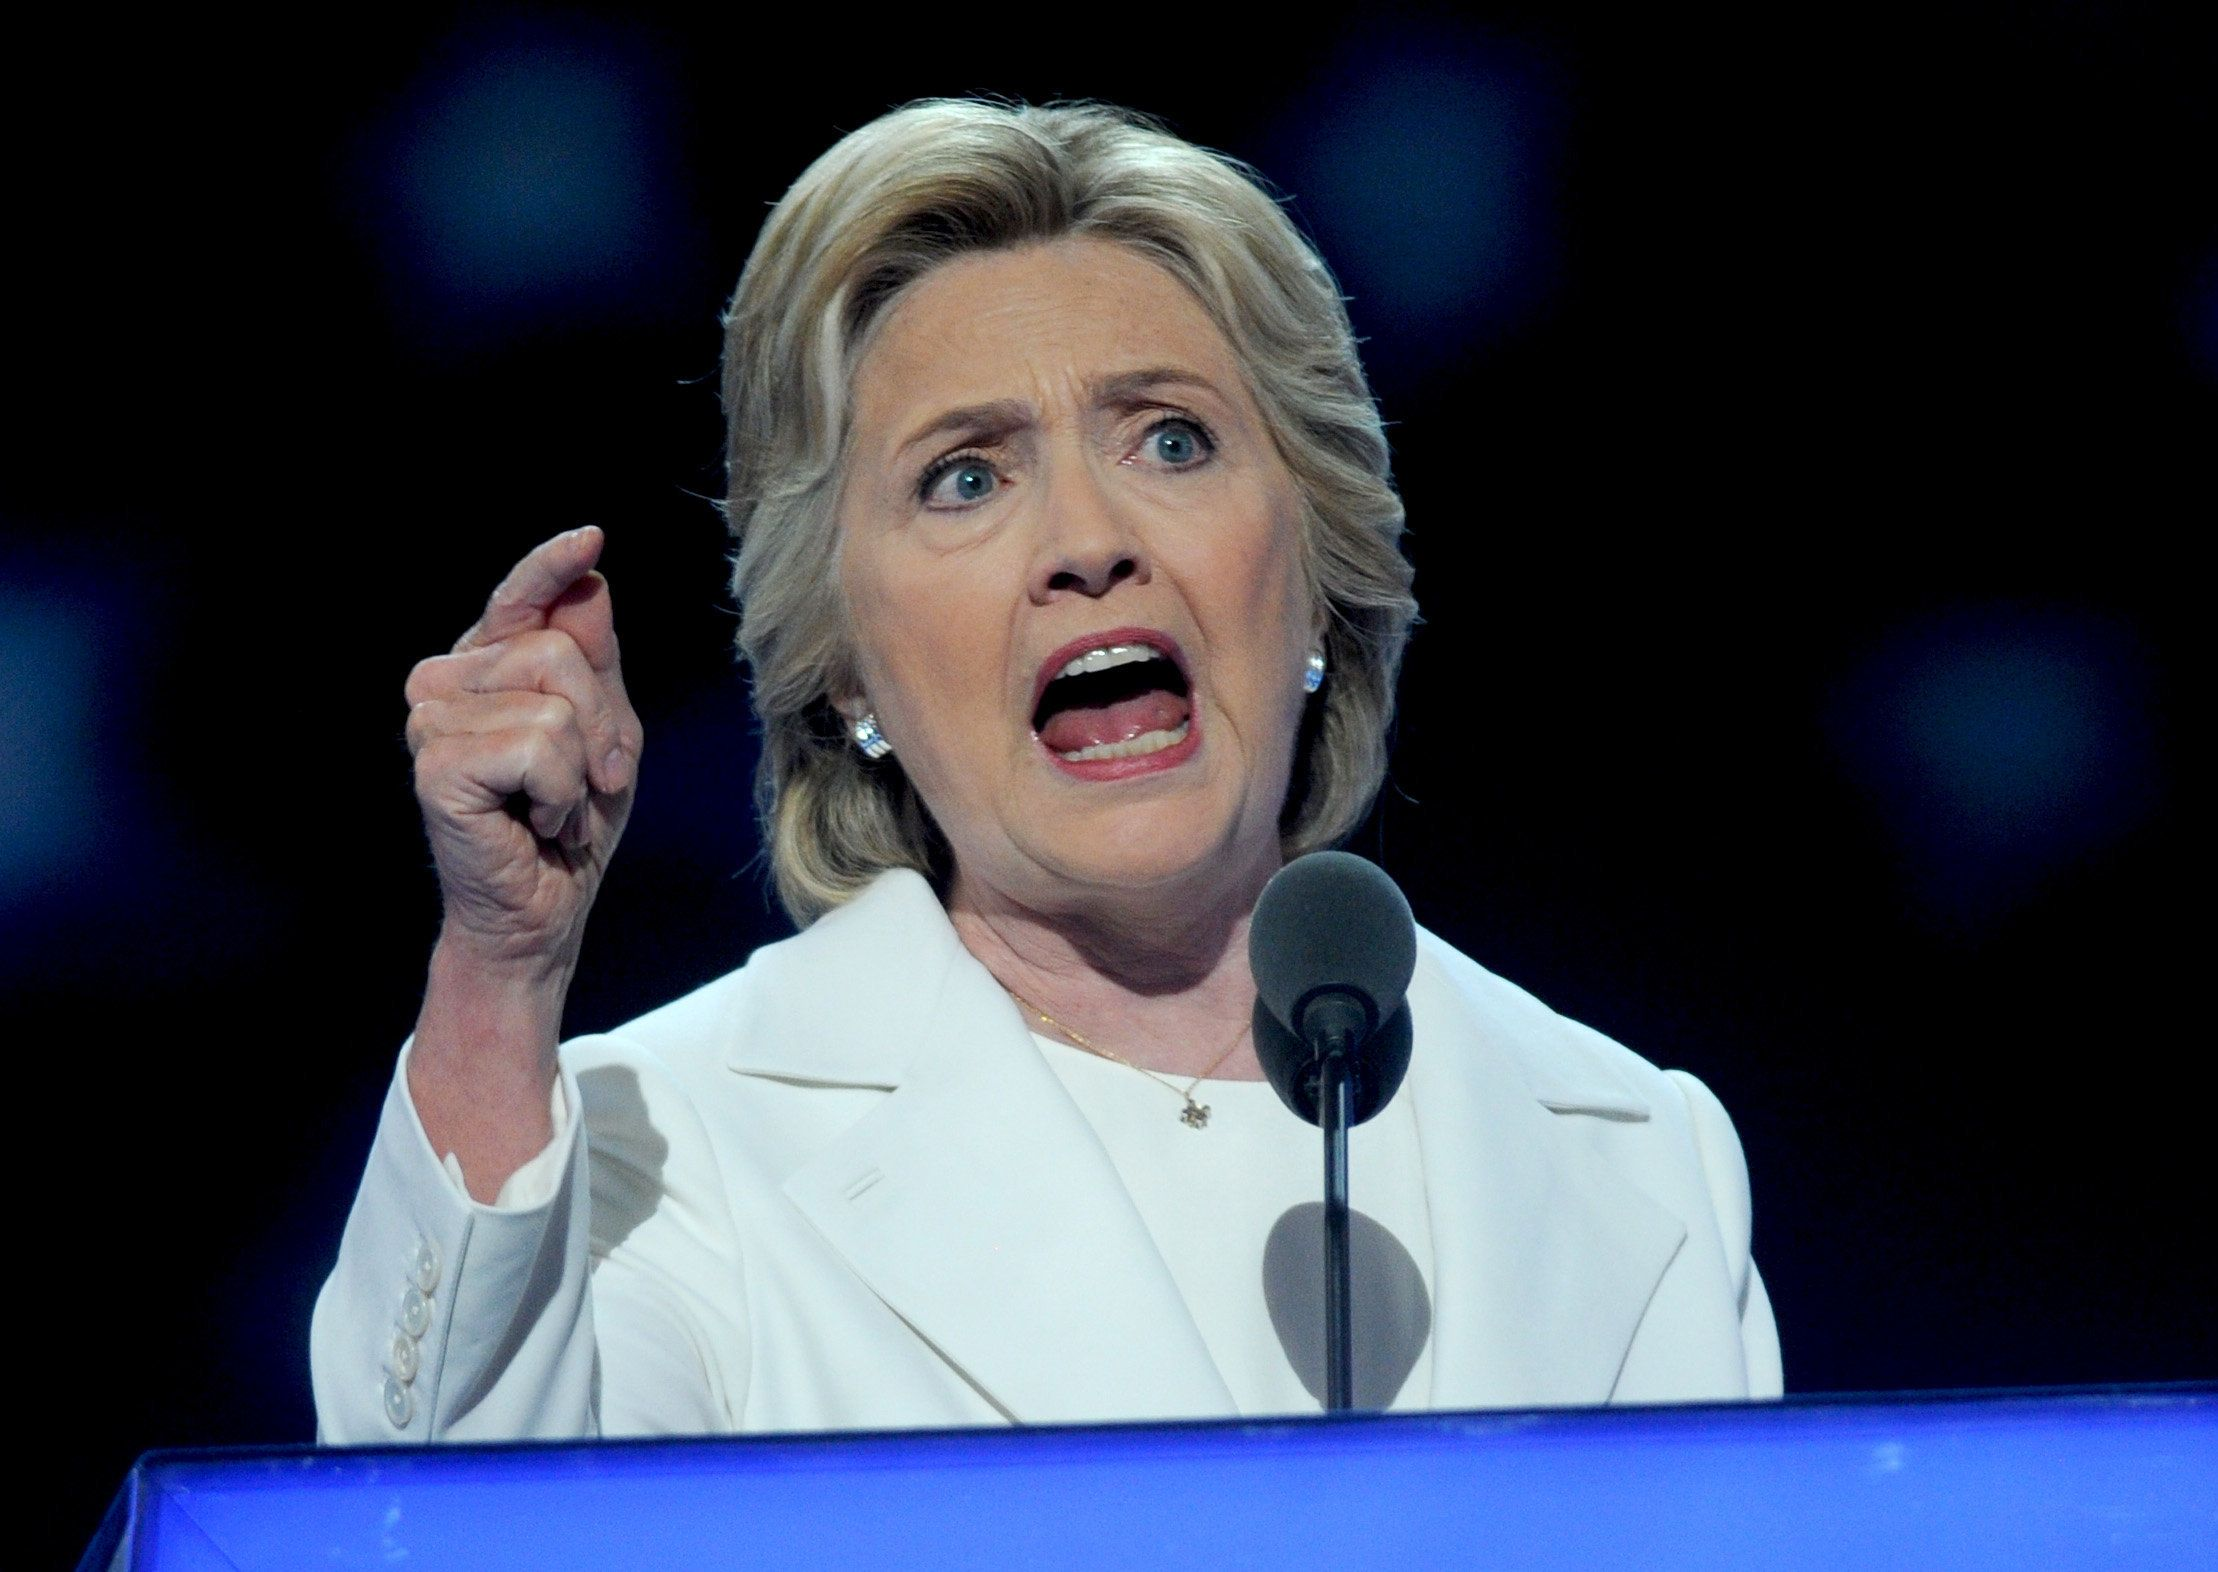 Hillary Clinton addresses delegates after formally accepting the Democratic nomination for president during day four of the Democratic National Convention at Wells Fargo Center in Philadelphia, PA, USA, on July 28, 2016. Democrat Hillary Clinton will face Republican Donald Trump in the national election. Photo by Dennis van Tine/ABACAPRESS.COM